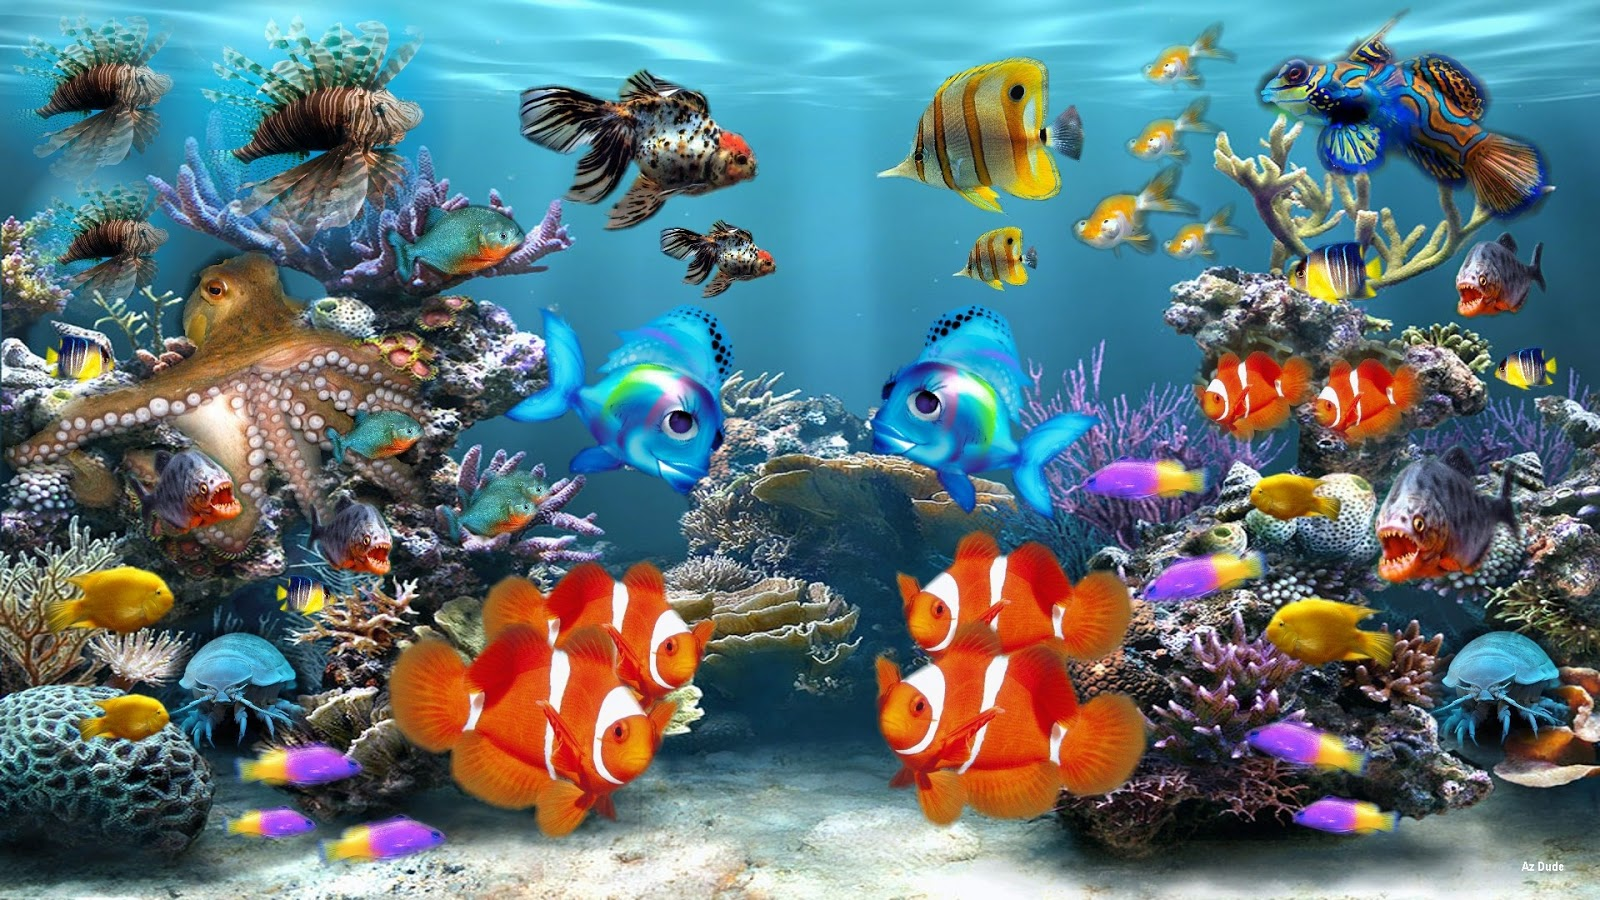 aquarium hd wallpaper aquarium wallpaper osabelhudosec. Black Bedroom Furniture Sets. Home Design Ideas